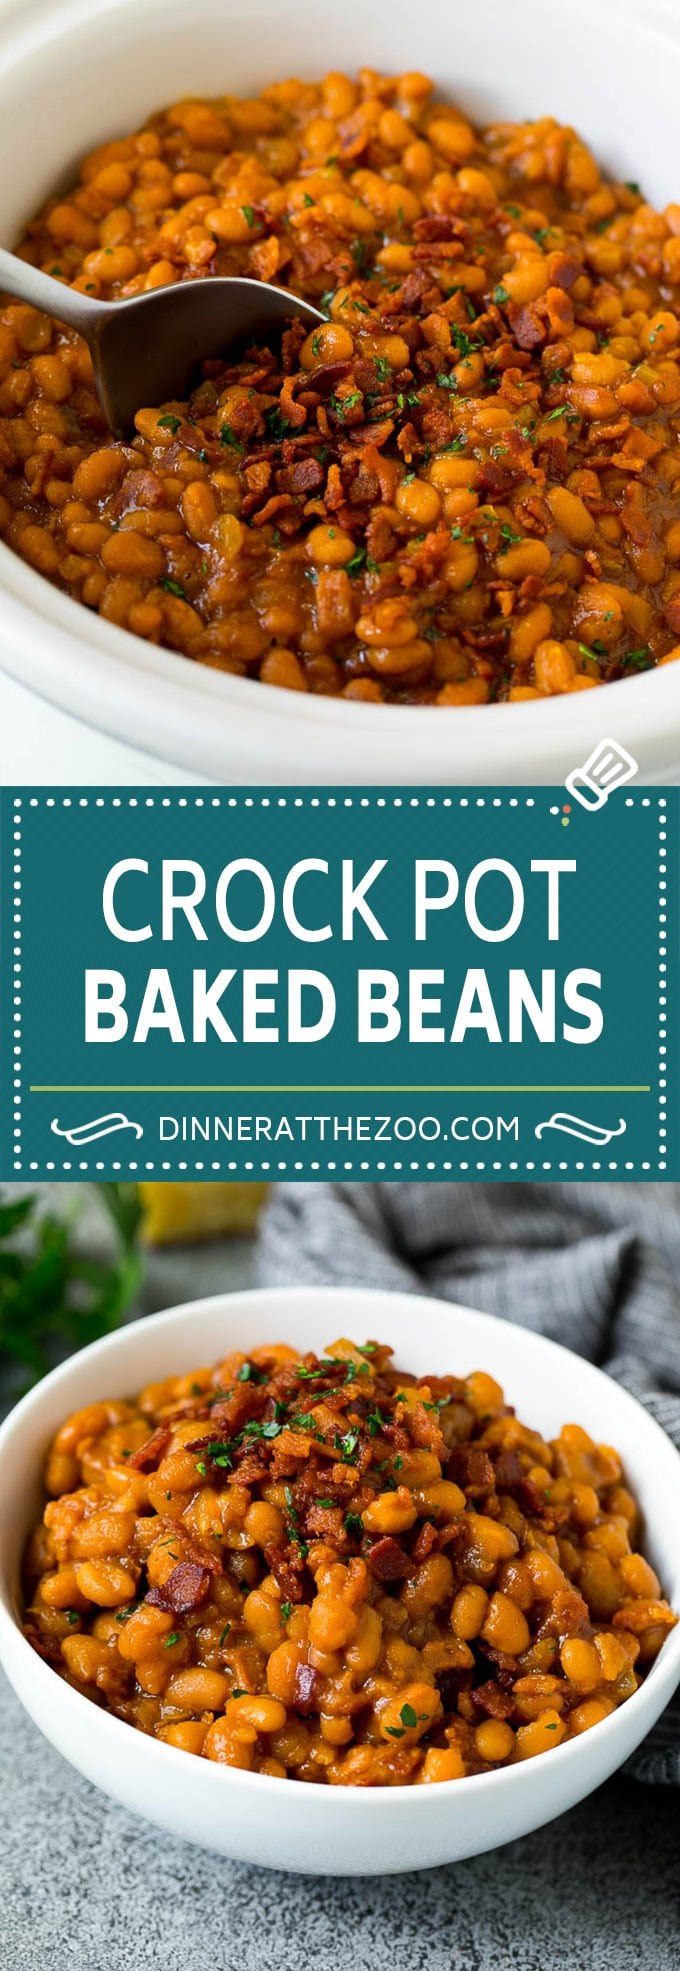 Crock Pot Baked Beans | Slow Cooker Baked Beans #beans #bacon #slowcooker #crockpot #dinneratthezoo